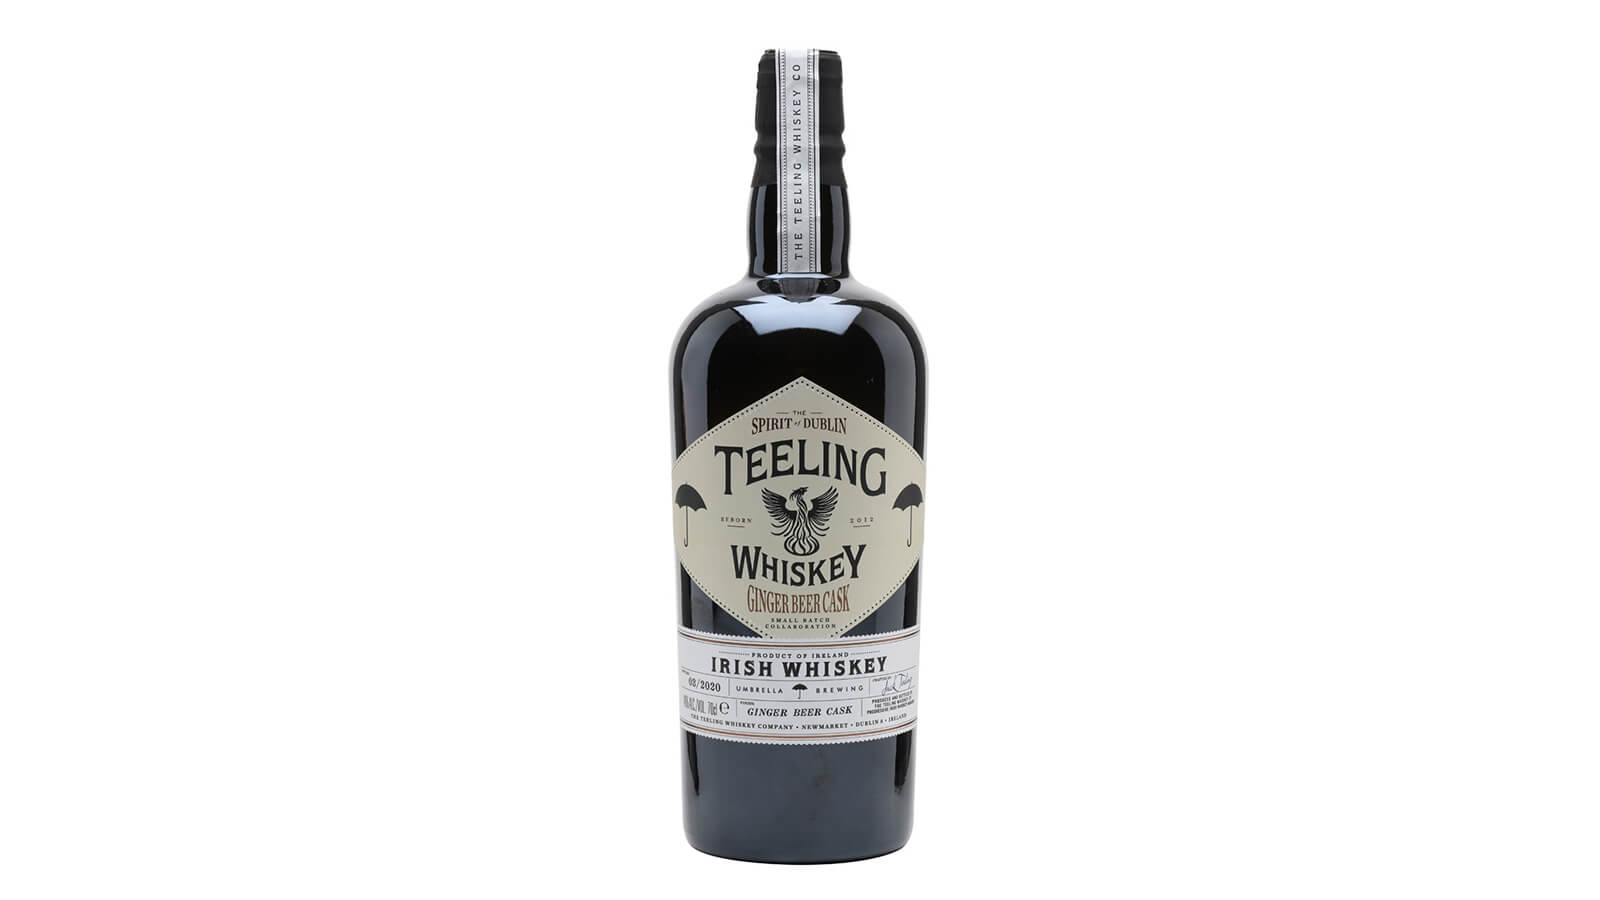 Teeling Umbrella